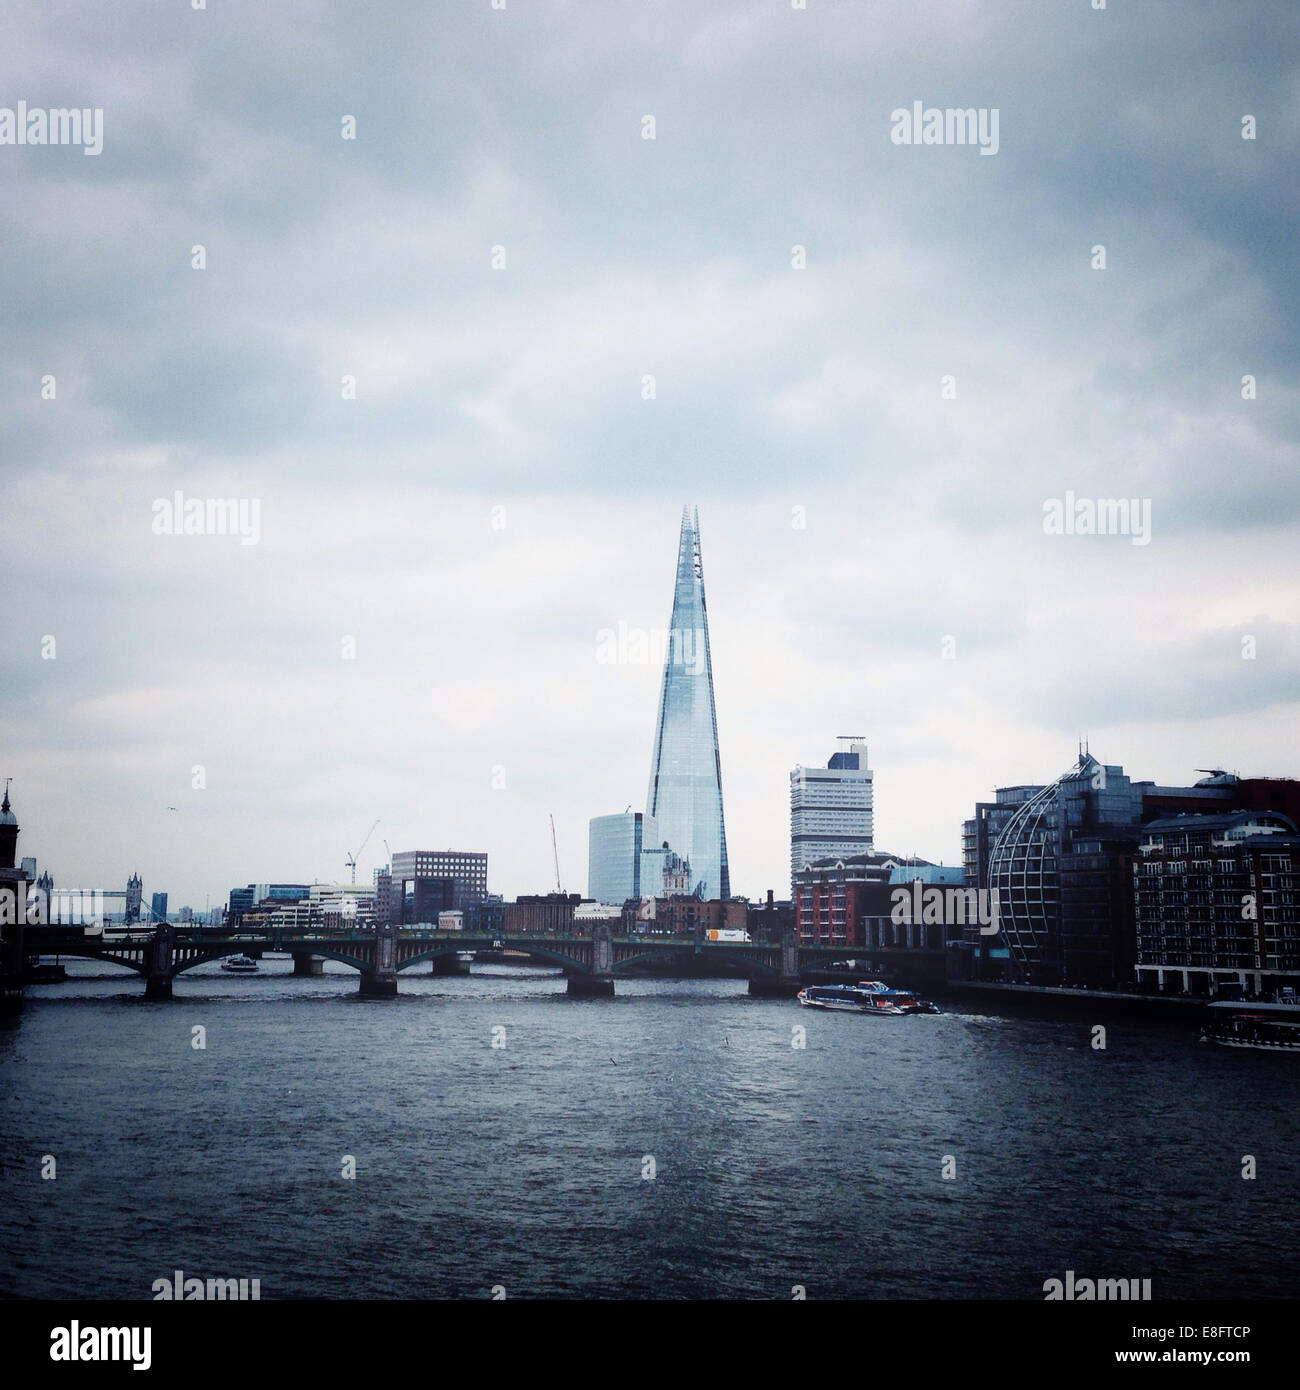 UK, England, London Skyline with Shard - Stock Image